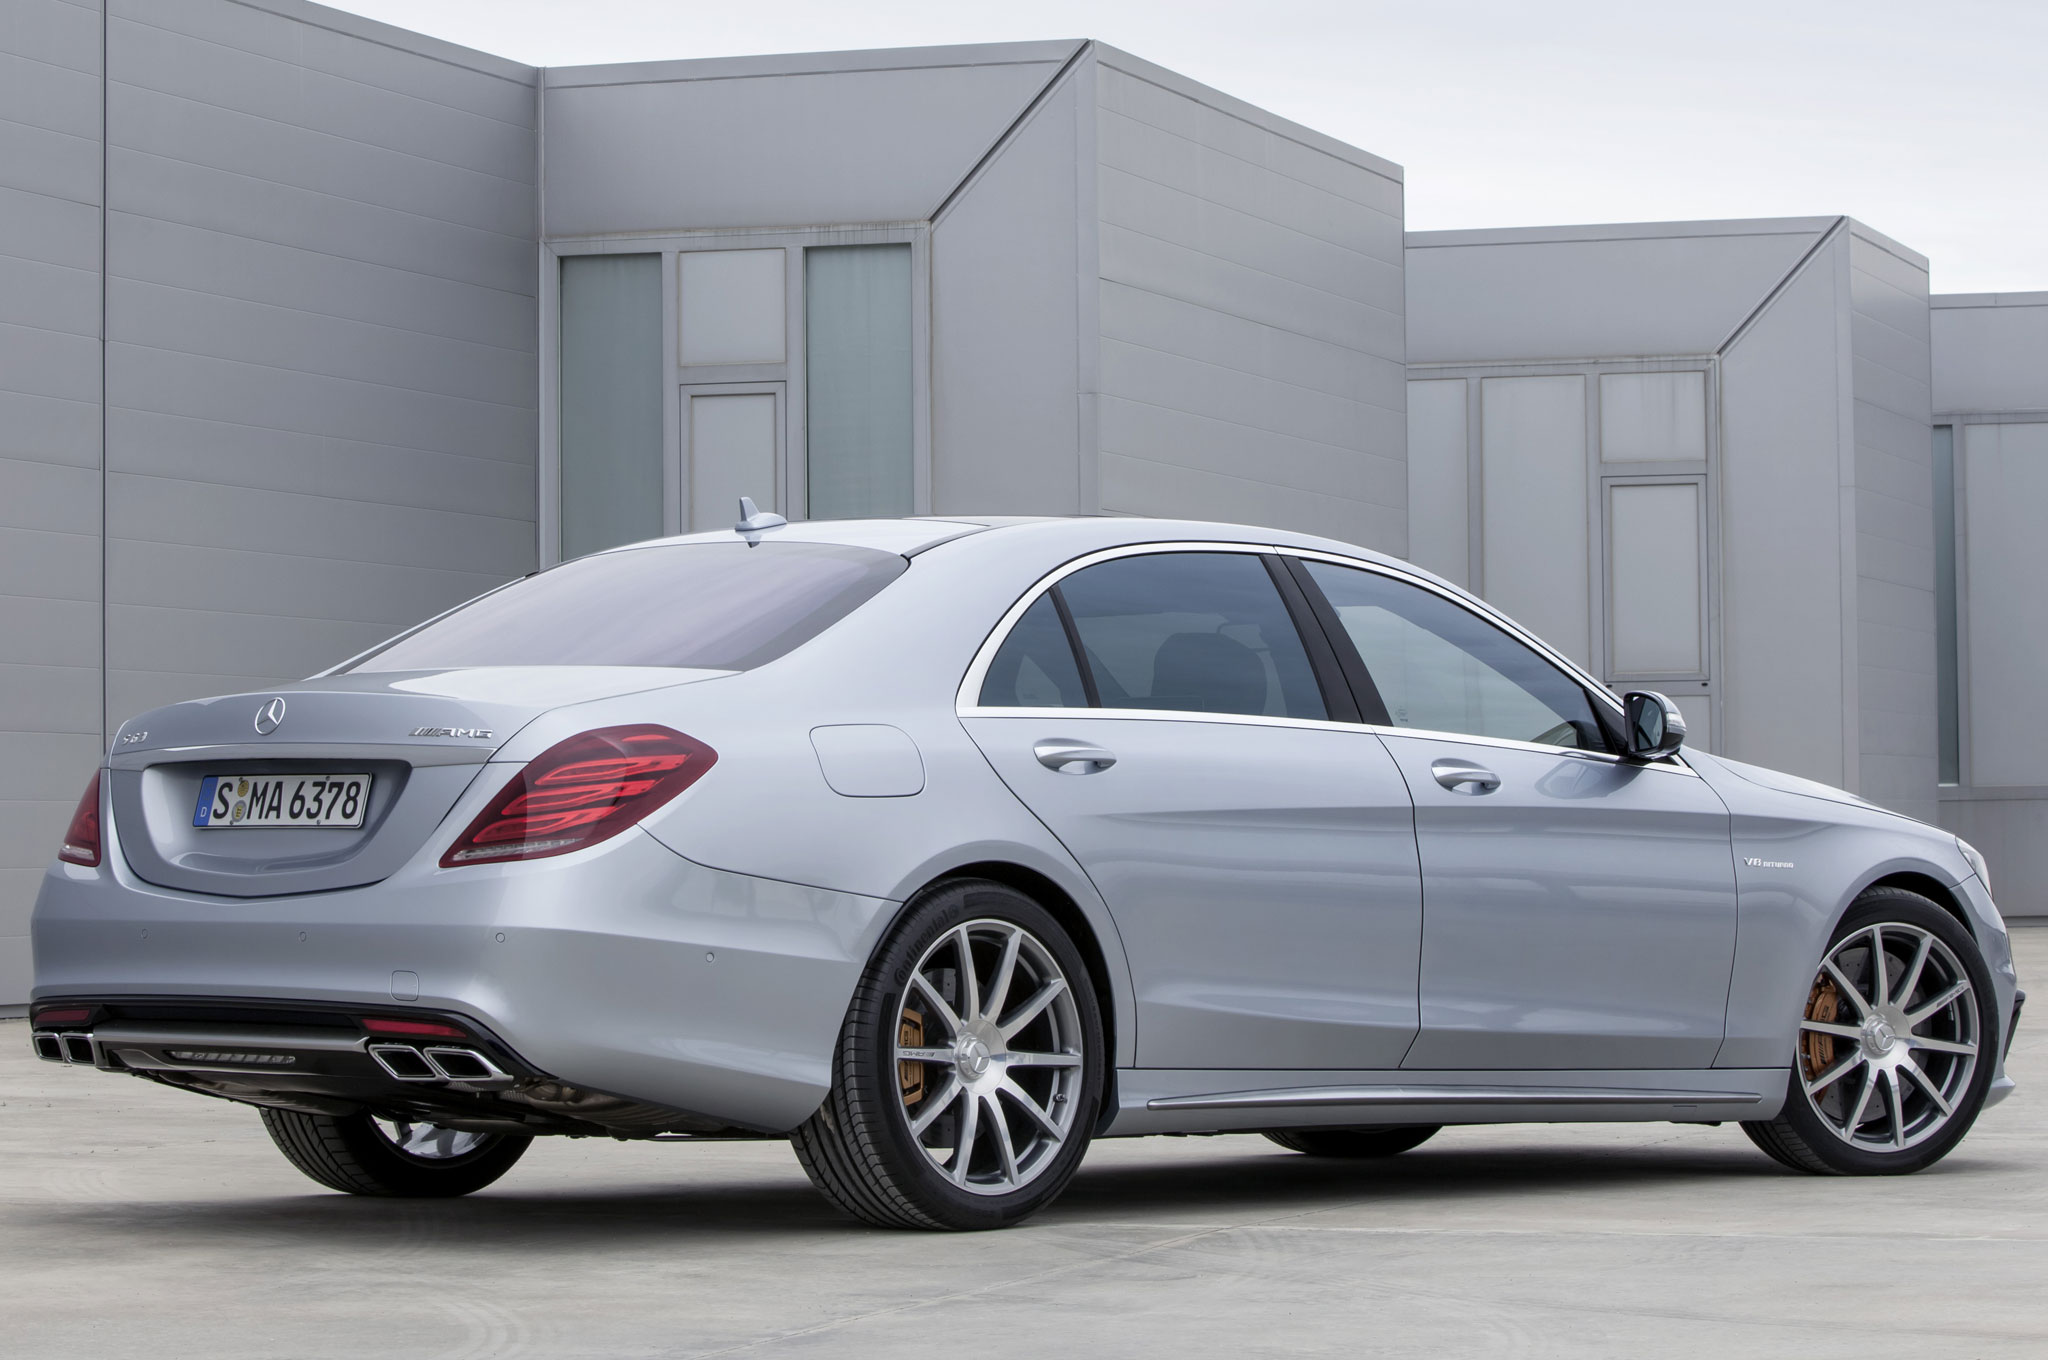 Mercedes benz amg s63 wallpapers high quality download free for Mercedes benz 4matic meaning